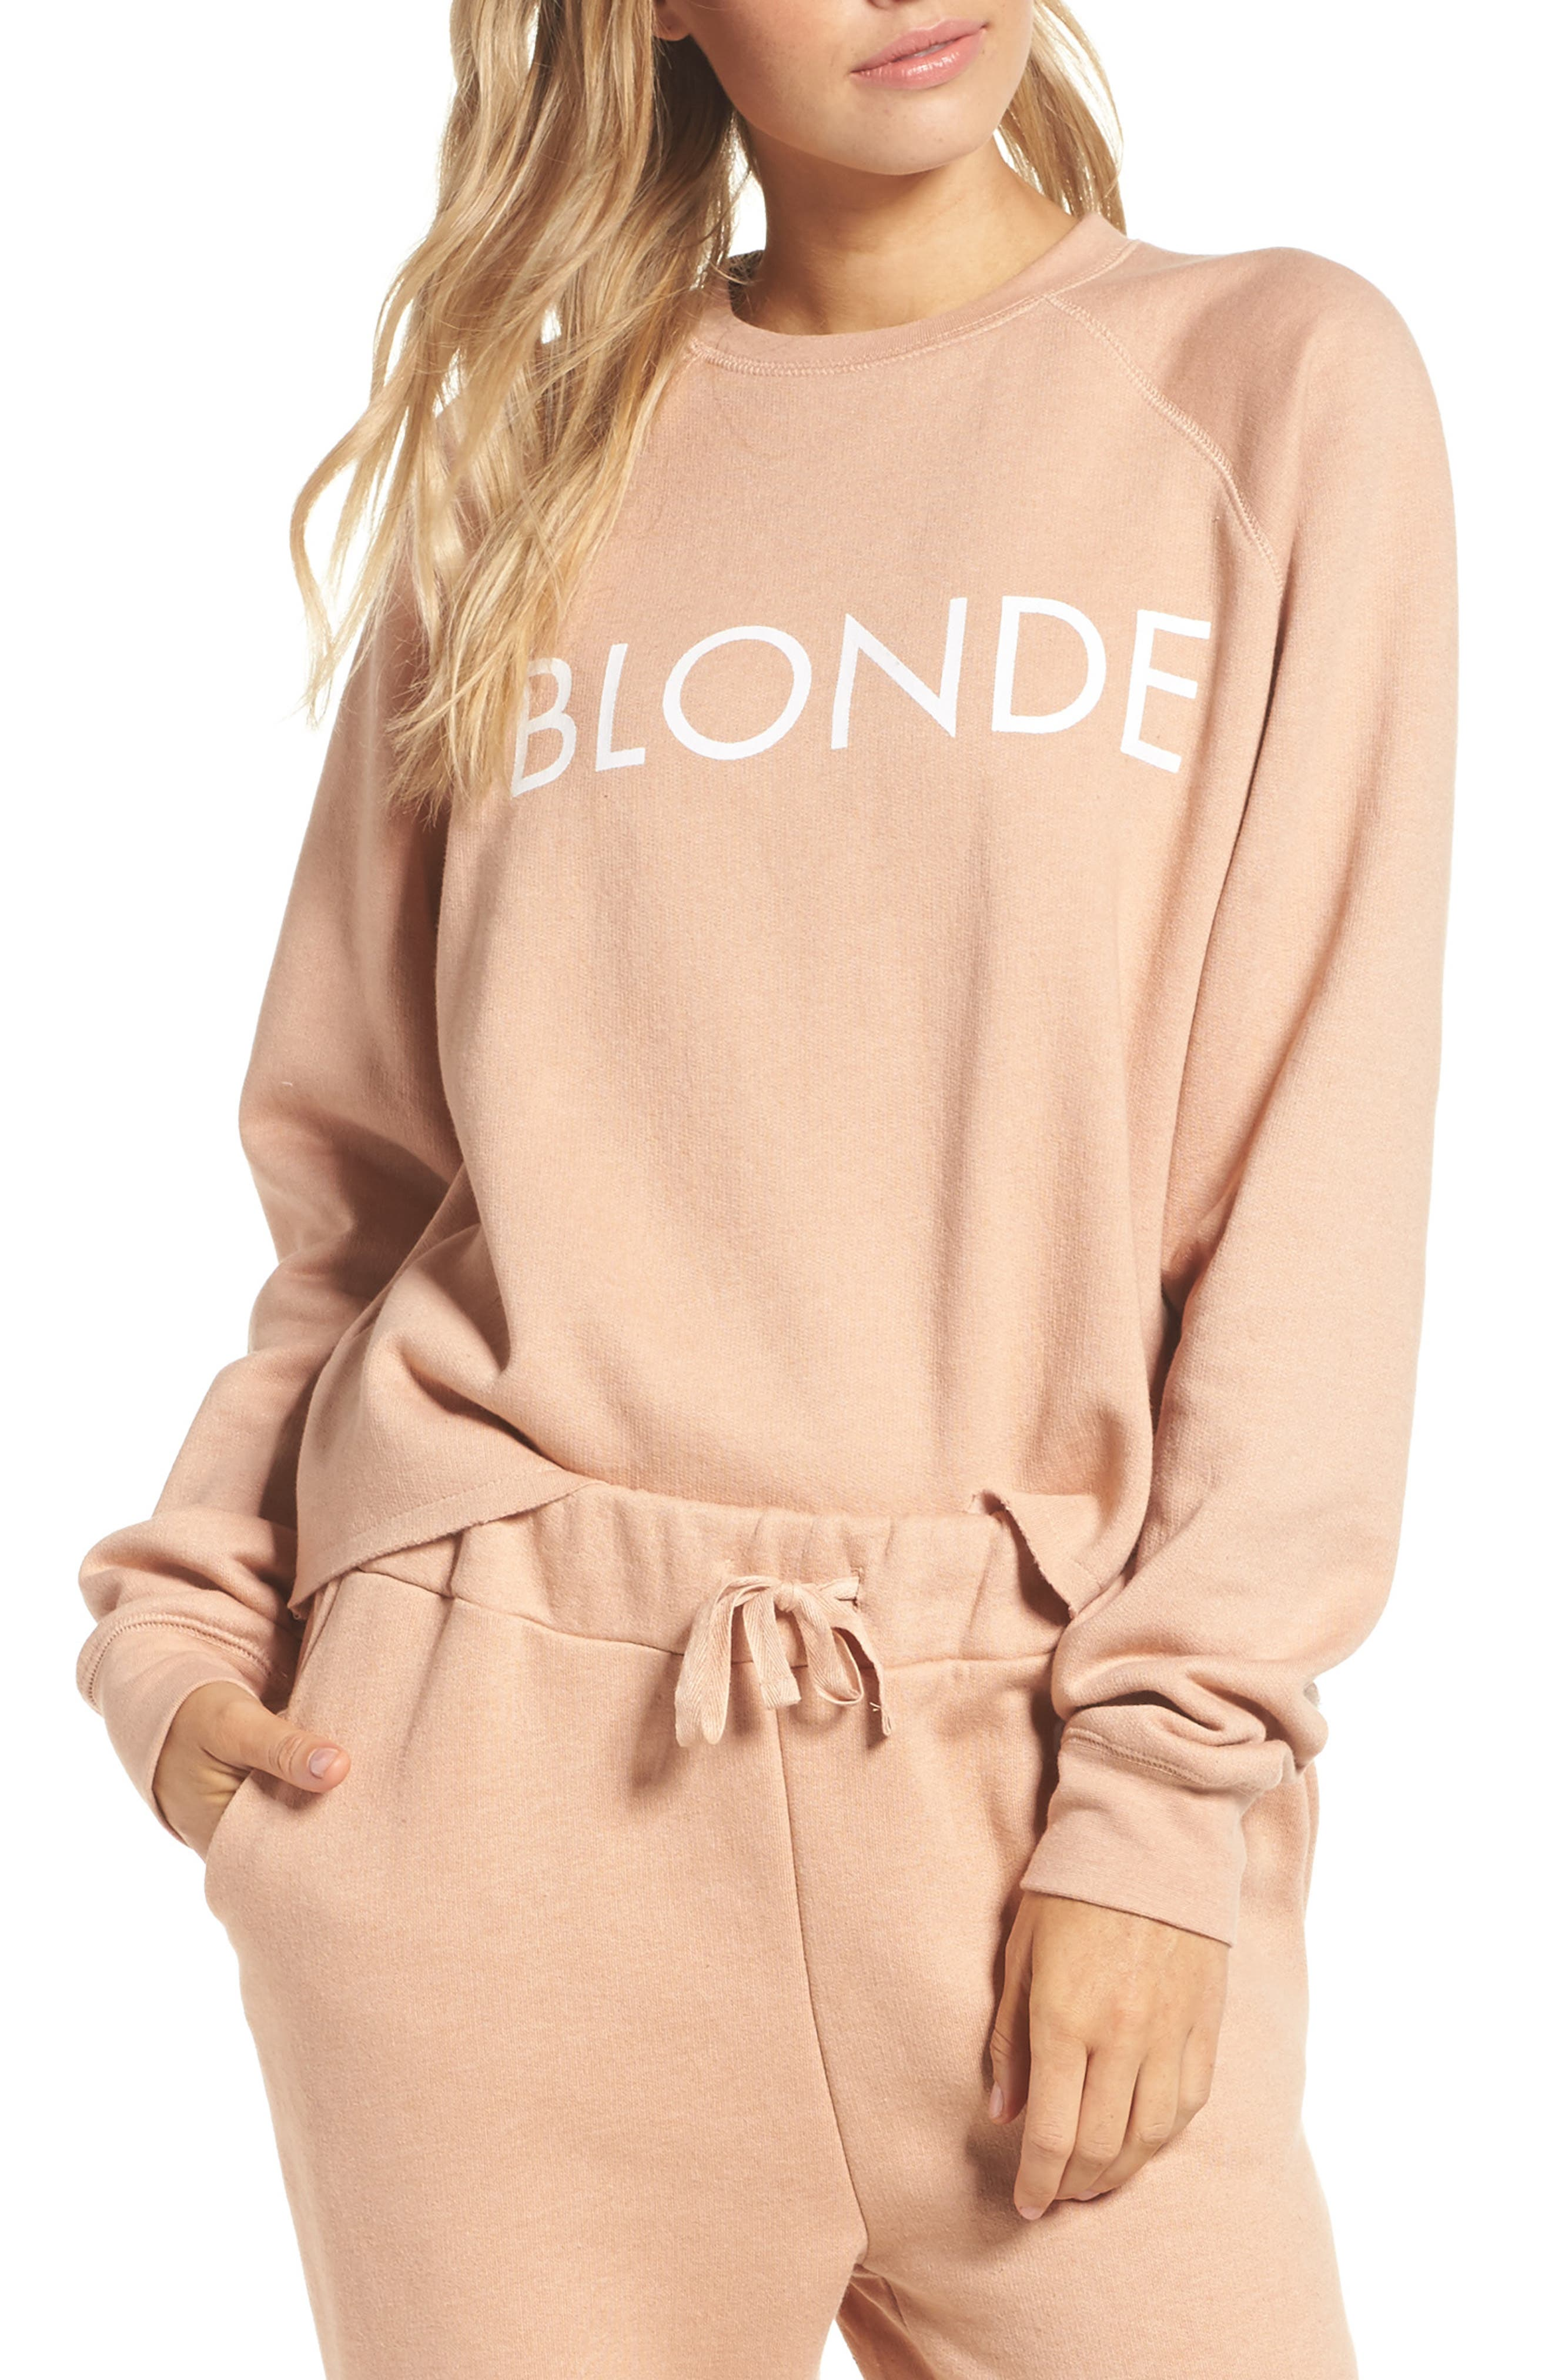 Middle Sister Blonde Sweatshirt,                         Main,                         color, 250